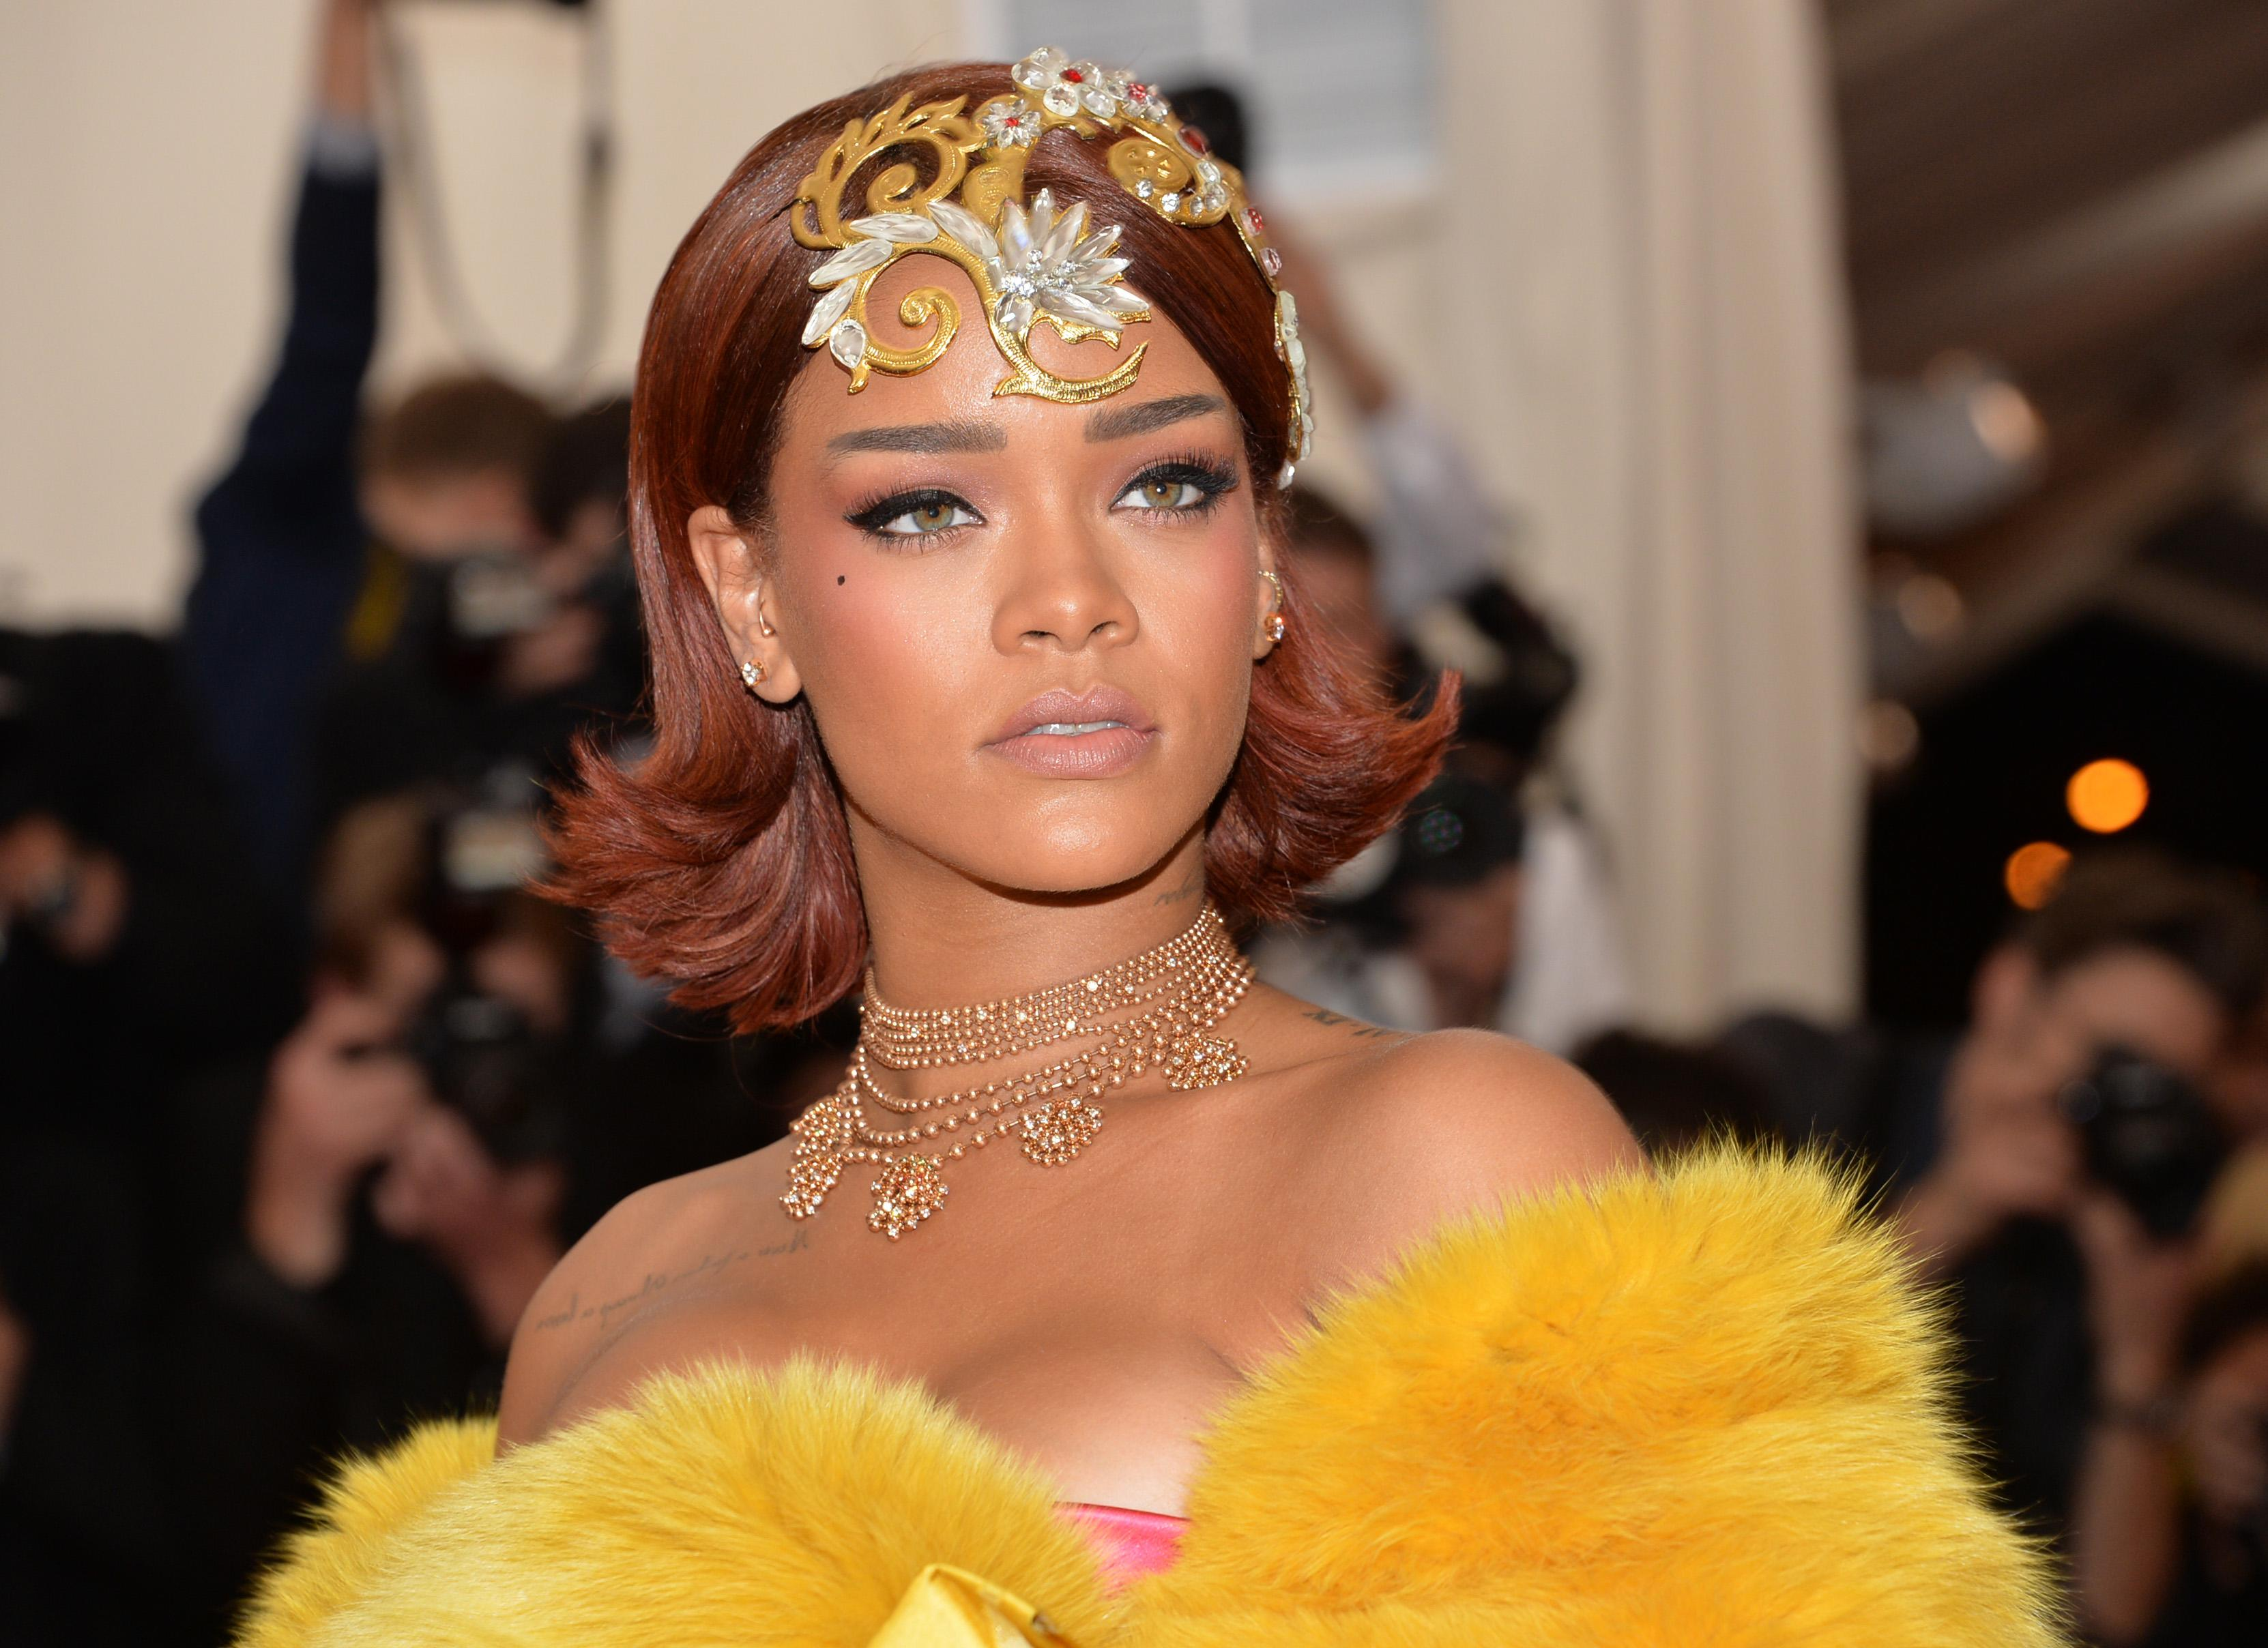 Rihanna in queen's garb shuts down Met Gala carpet